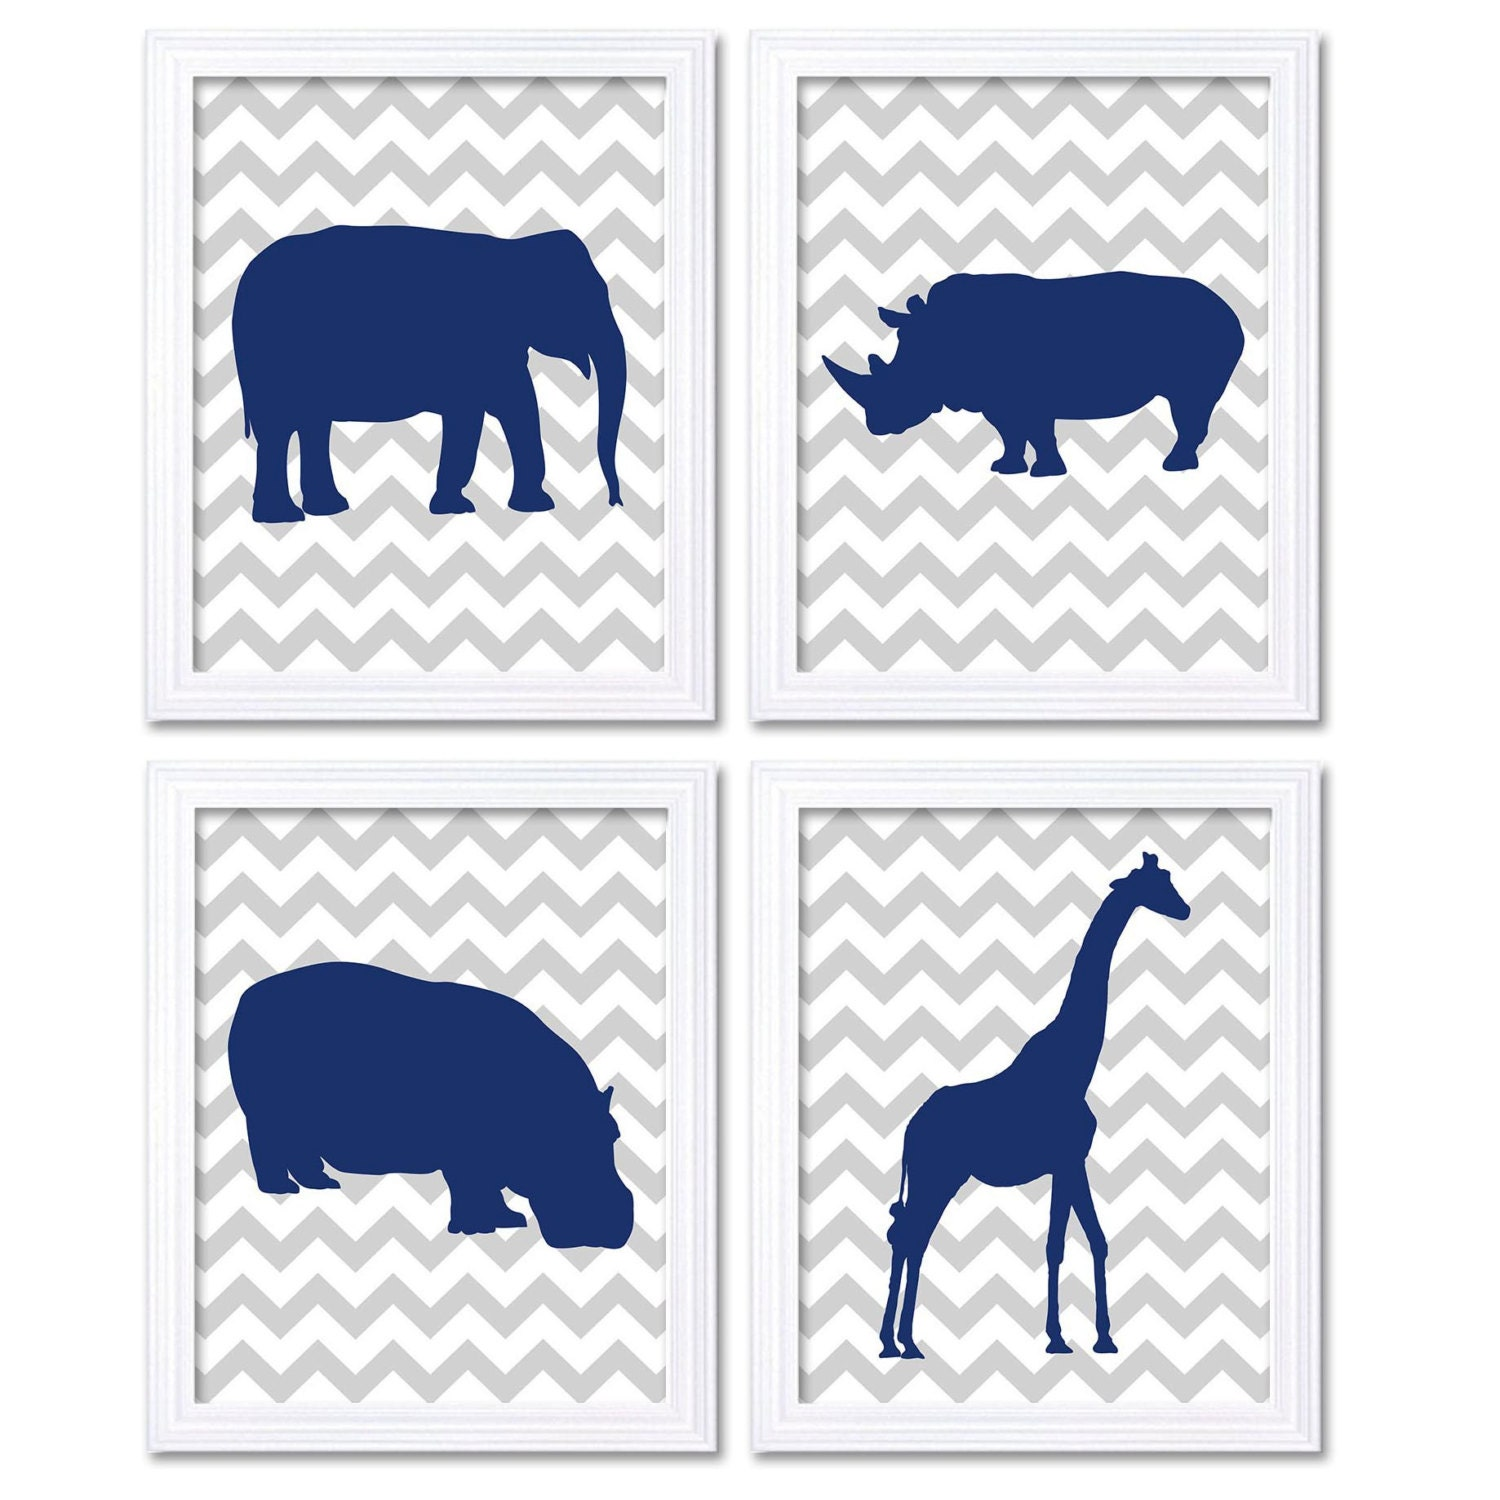 Blue Navy Grey Nursery Art Nursery Print Baby Africa African Animals Set of 4 Prints Safari Jungle E